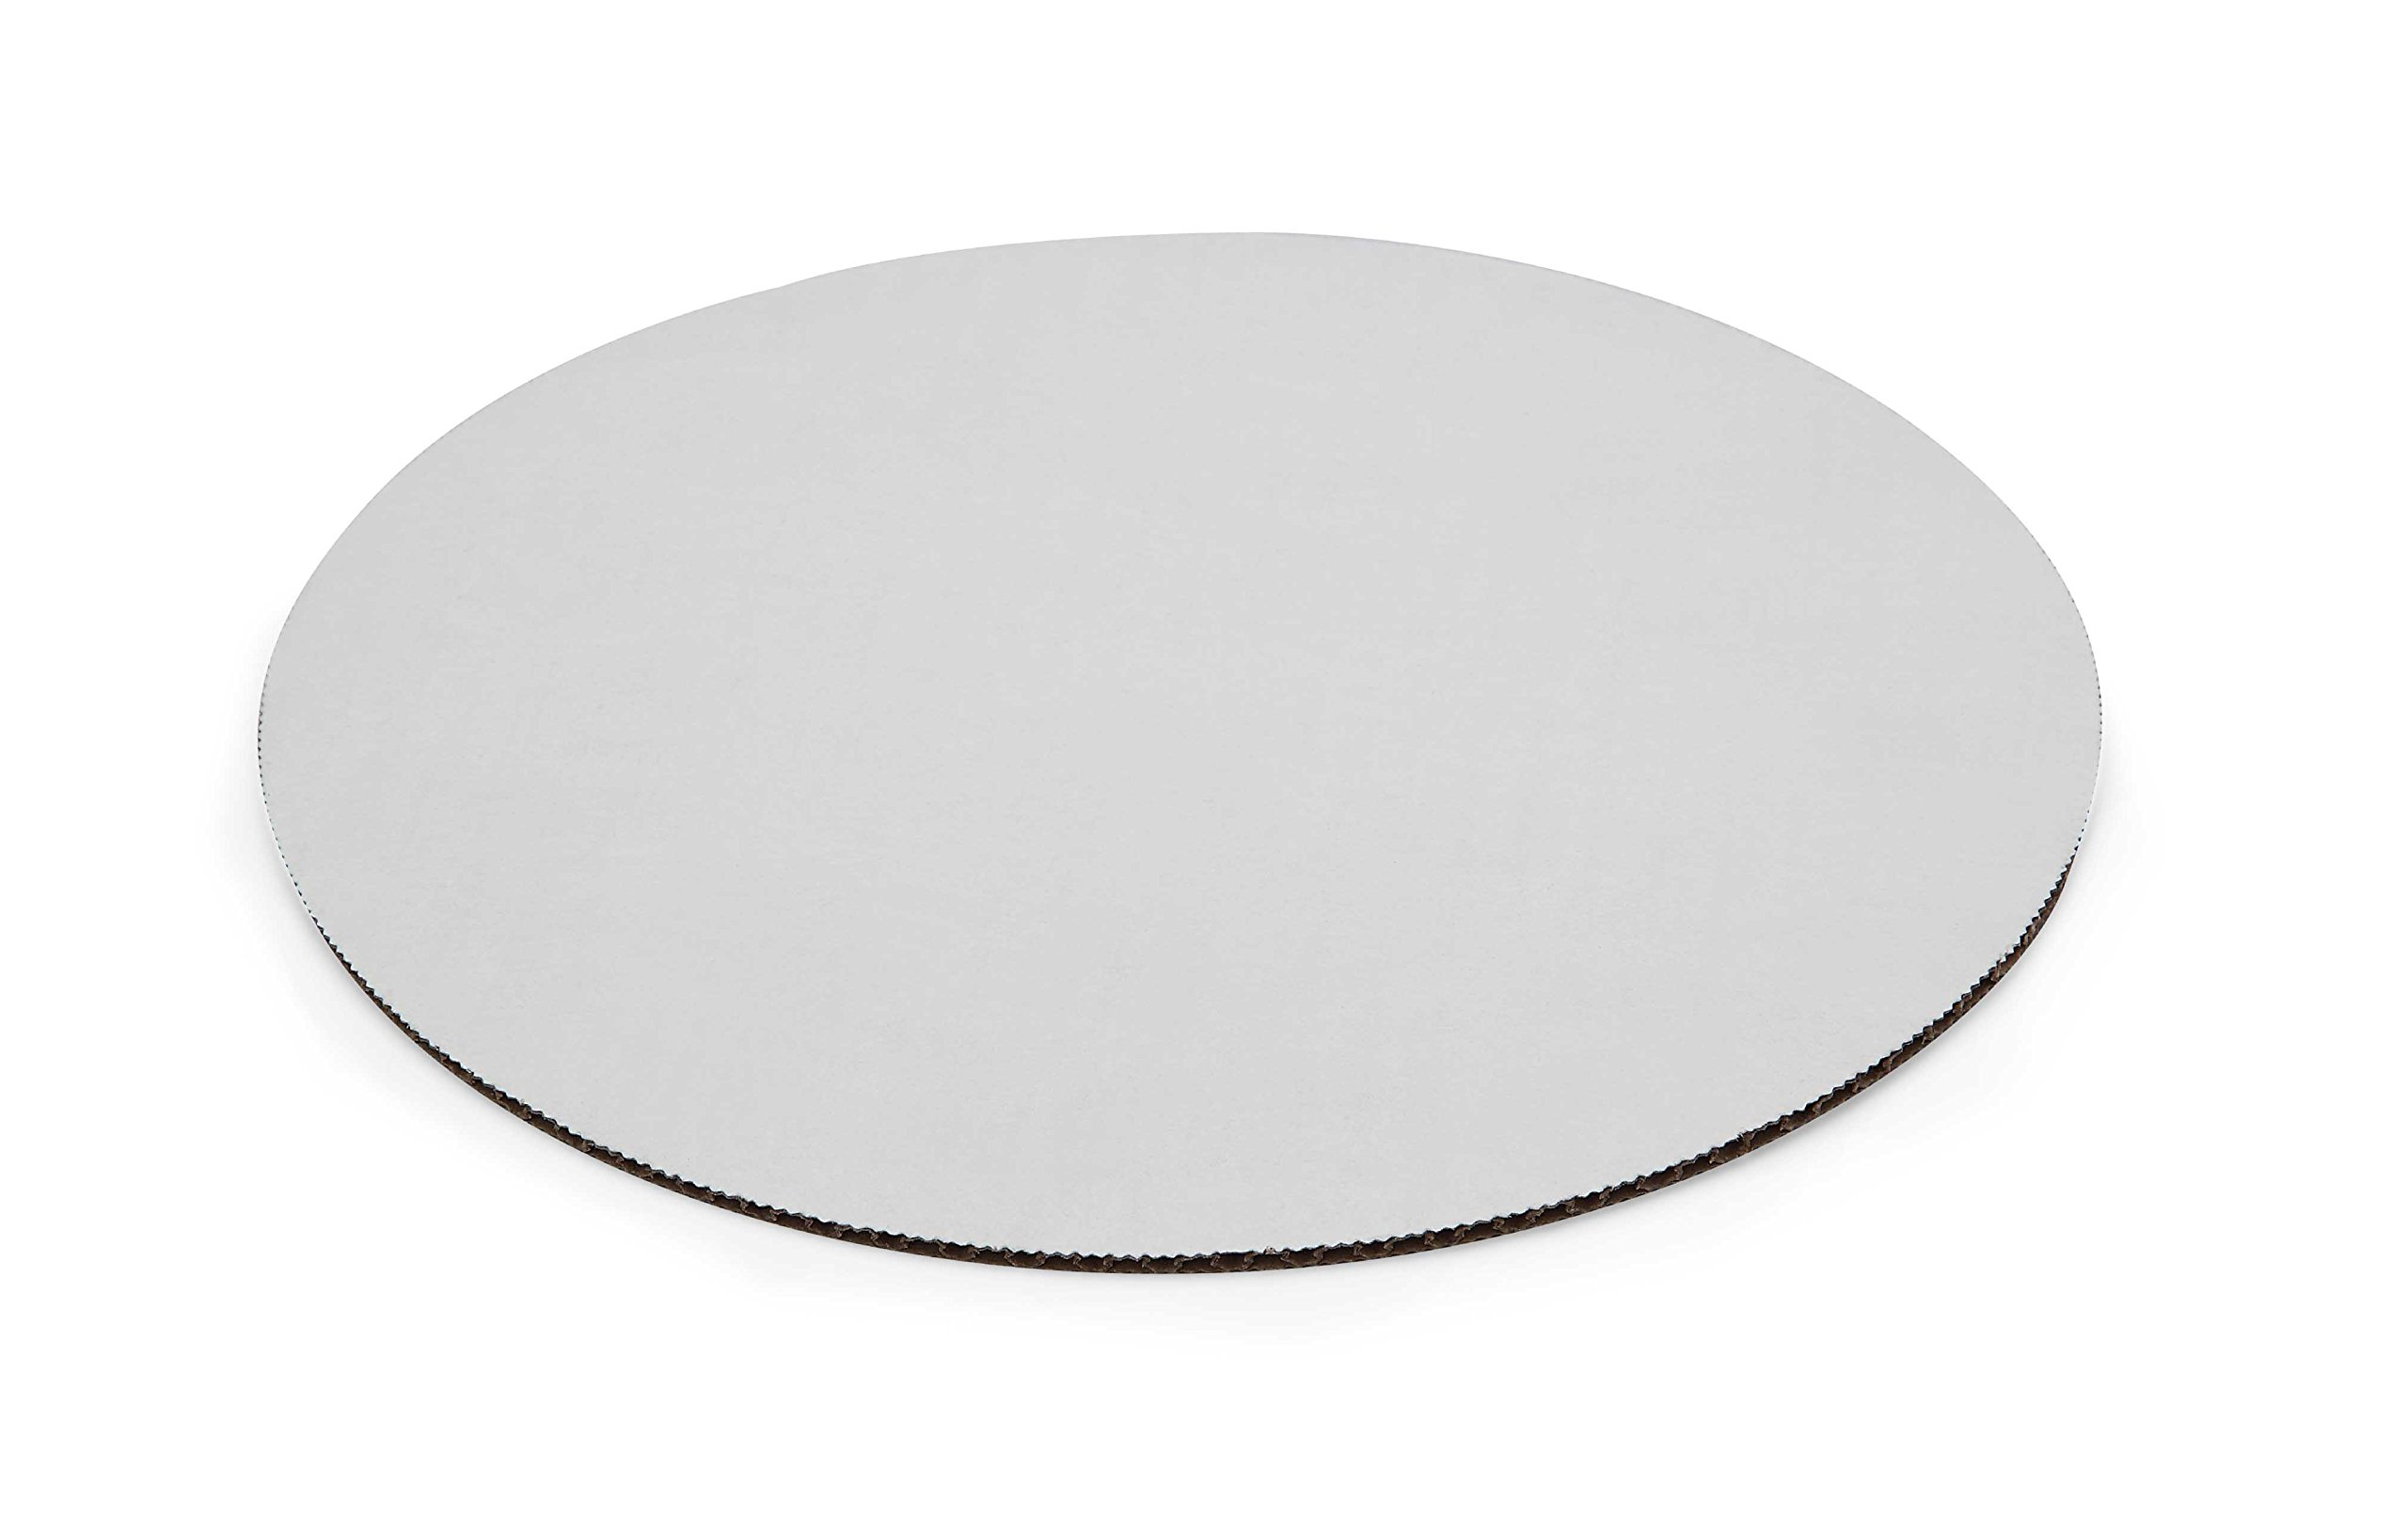 W PACKAGING WPDWC14 14'' White/Kraft Double Wall Cake Circle, Non Grease Proof, Corrugated Paper Board (Pack of 50)